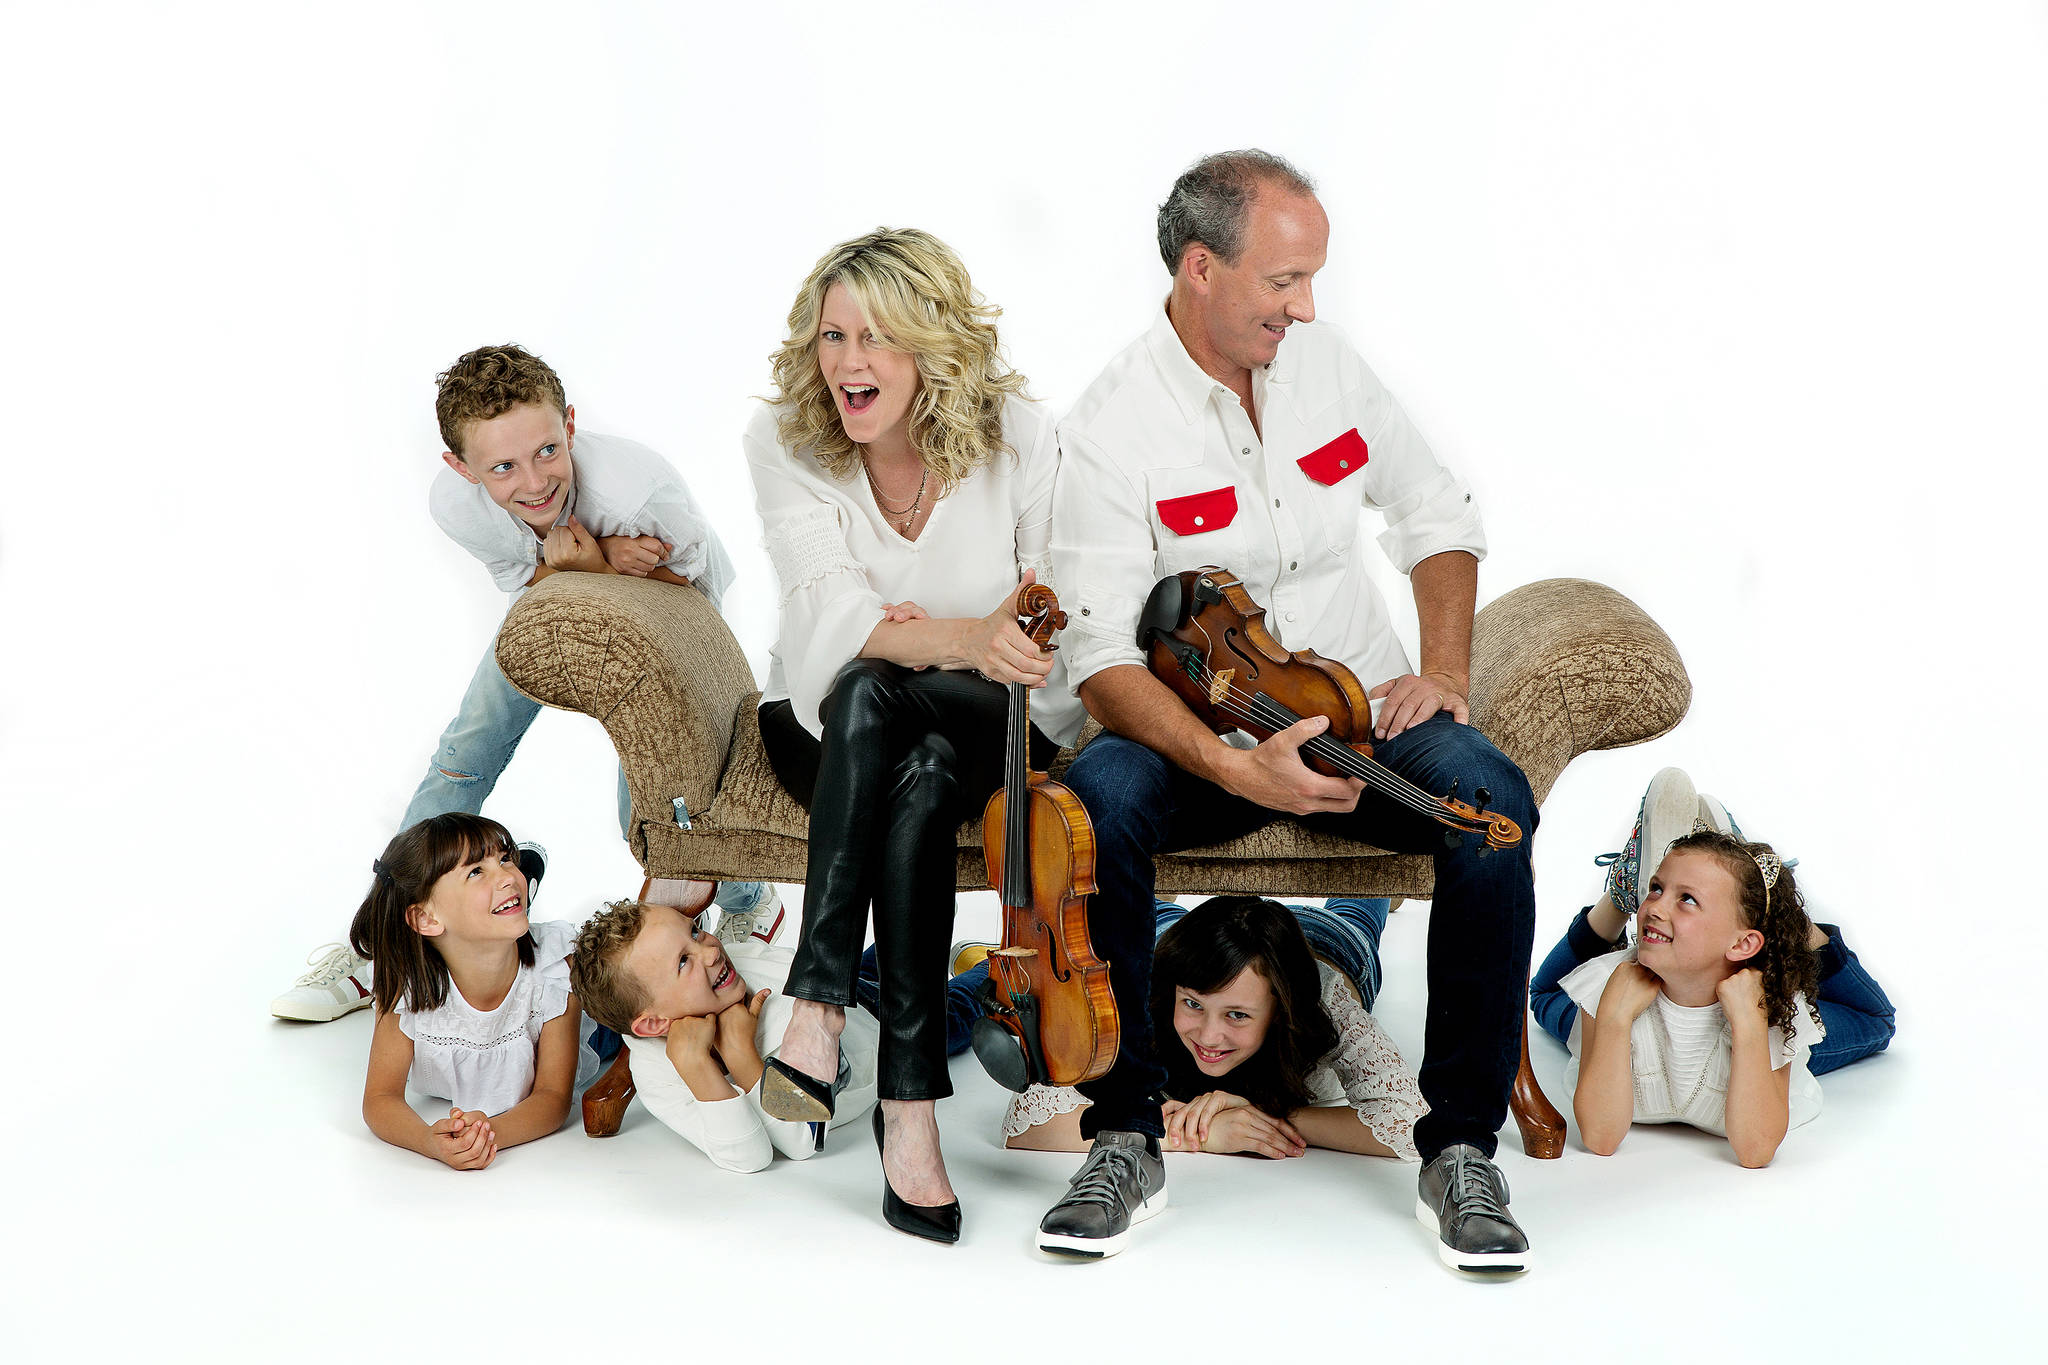 Rebekah Littlejohn Photography Natalie MacMaster and Donnell Leahy's five older children have performed a Celtic Christmas concert with them for years. New to the stage is Sadie, 6, who with their youngest child, Maria, 2, is not pictured.